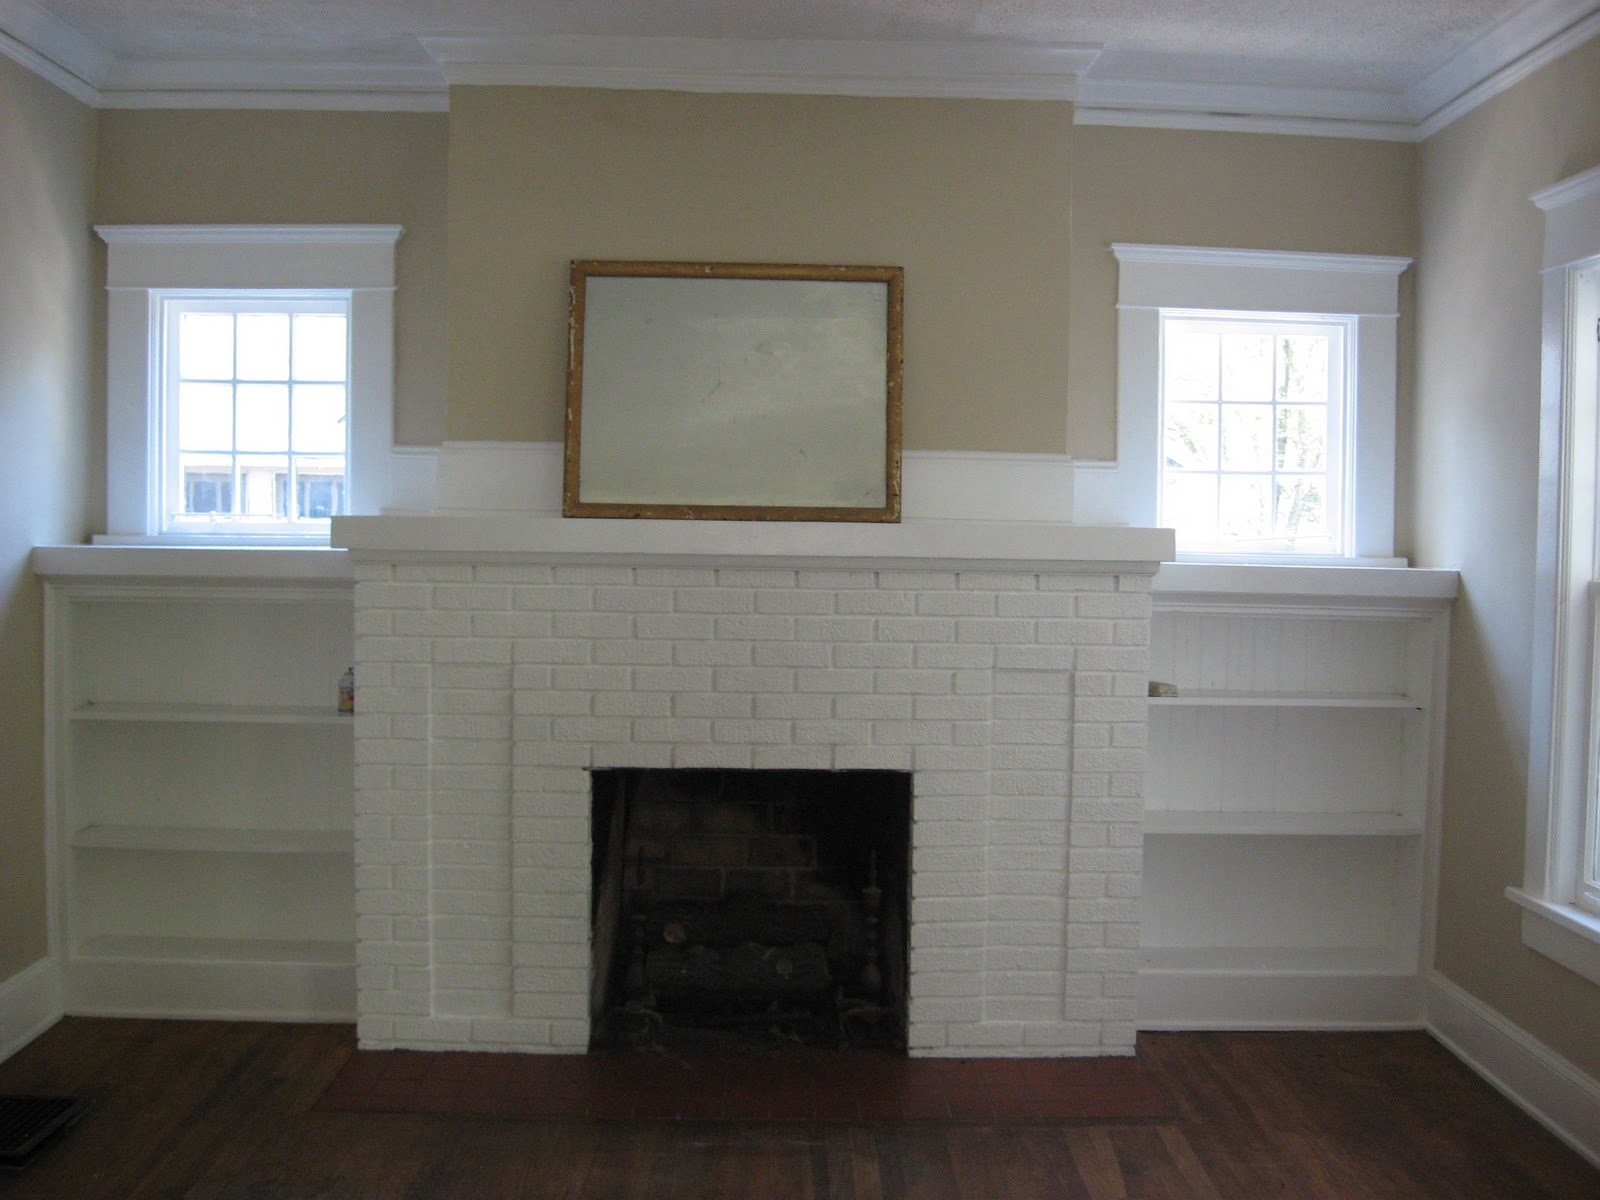 Pretty old houses guest blogger our urban bungalow for Bungalow fireplace ideas